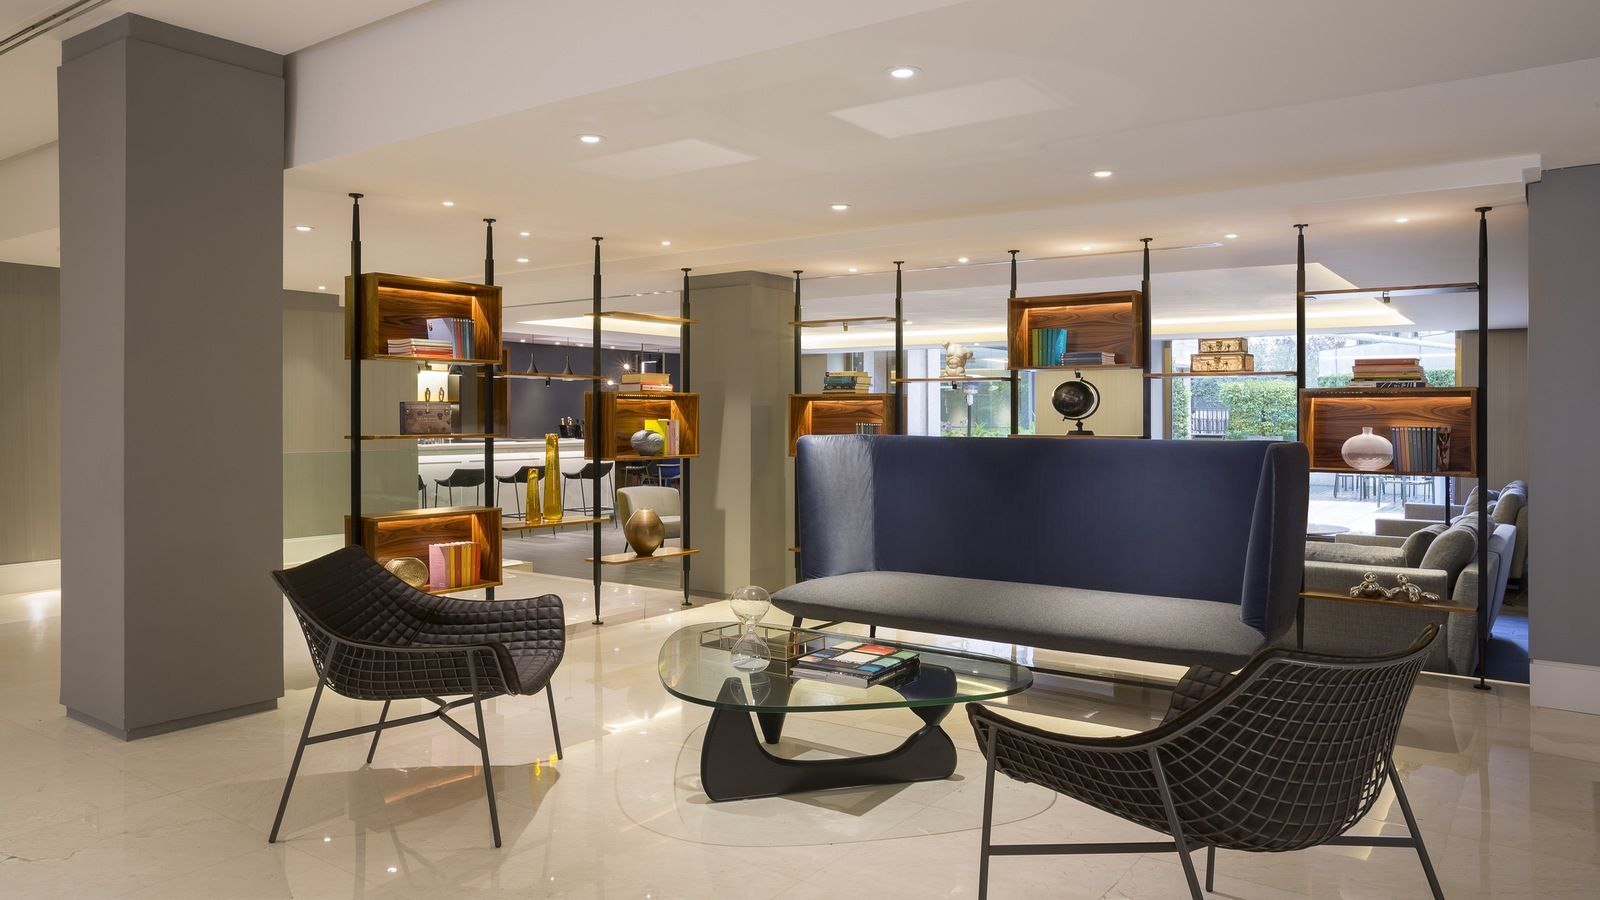 Rome welcomes back le m ridien brand hotel designs for Hotel design rome